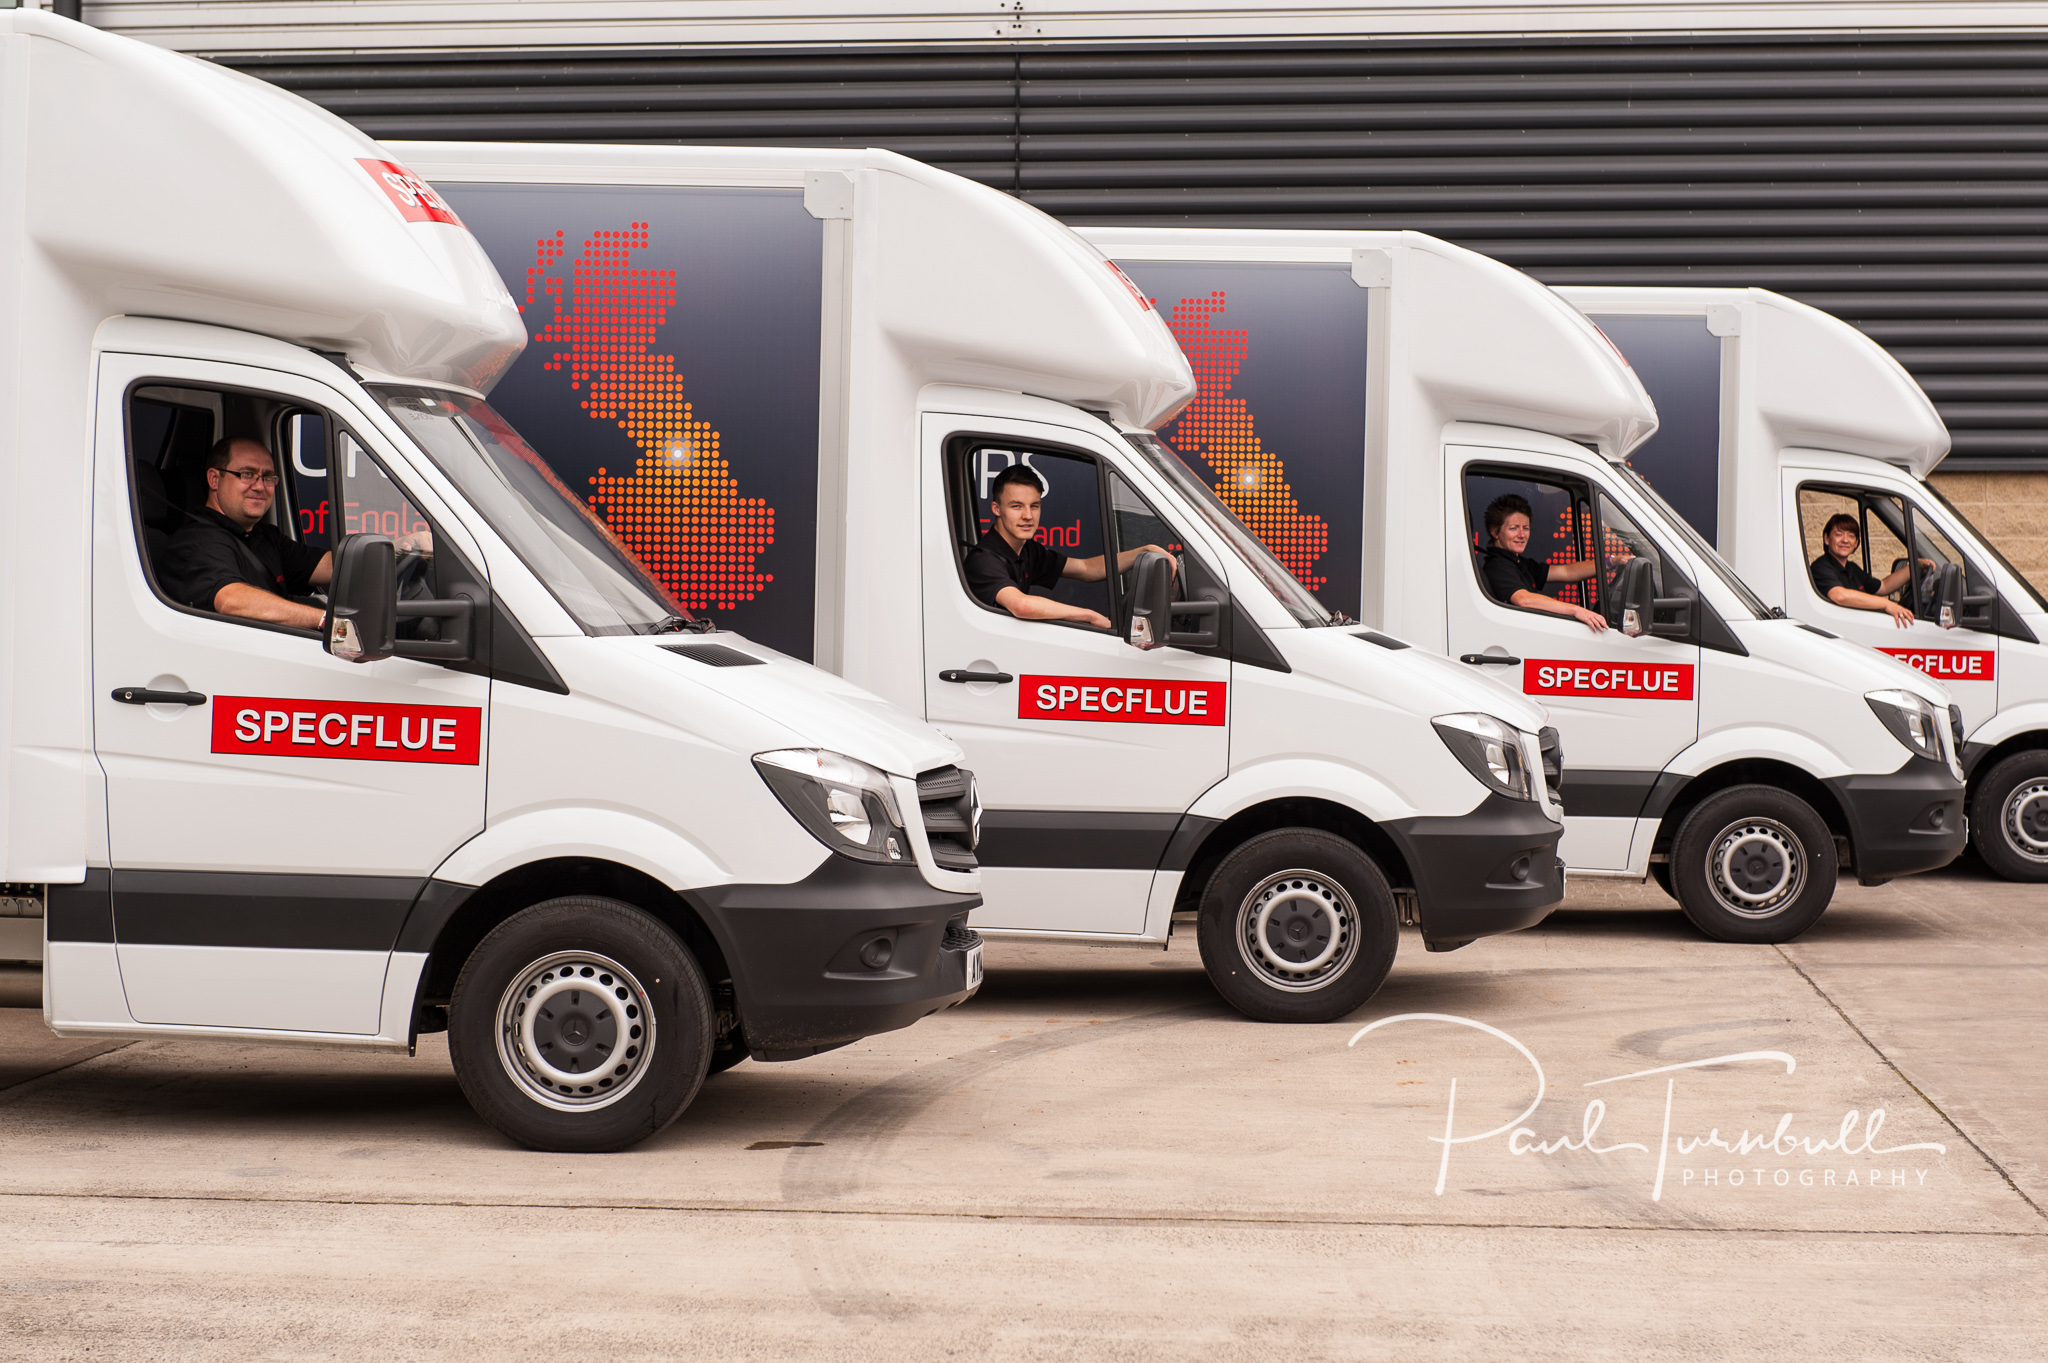 commercial-pr-photographer-leeds-yorkshire-specflue-033.jpg